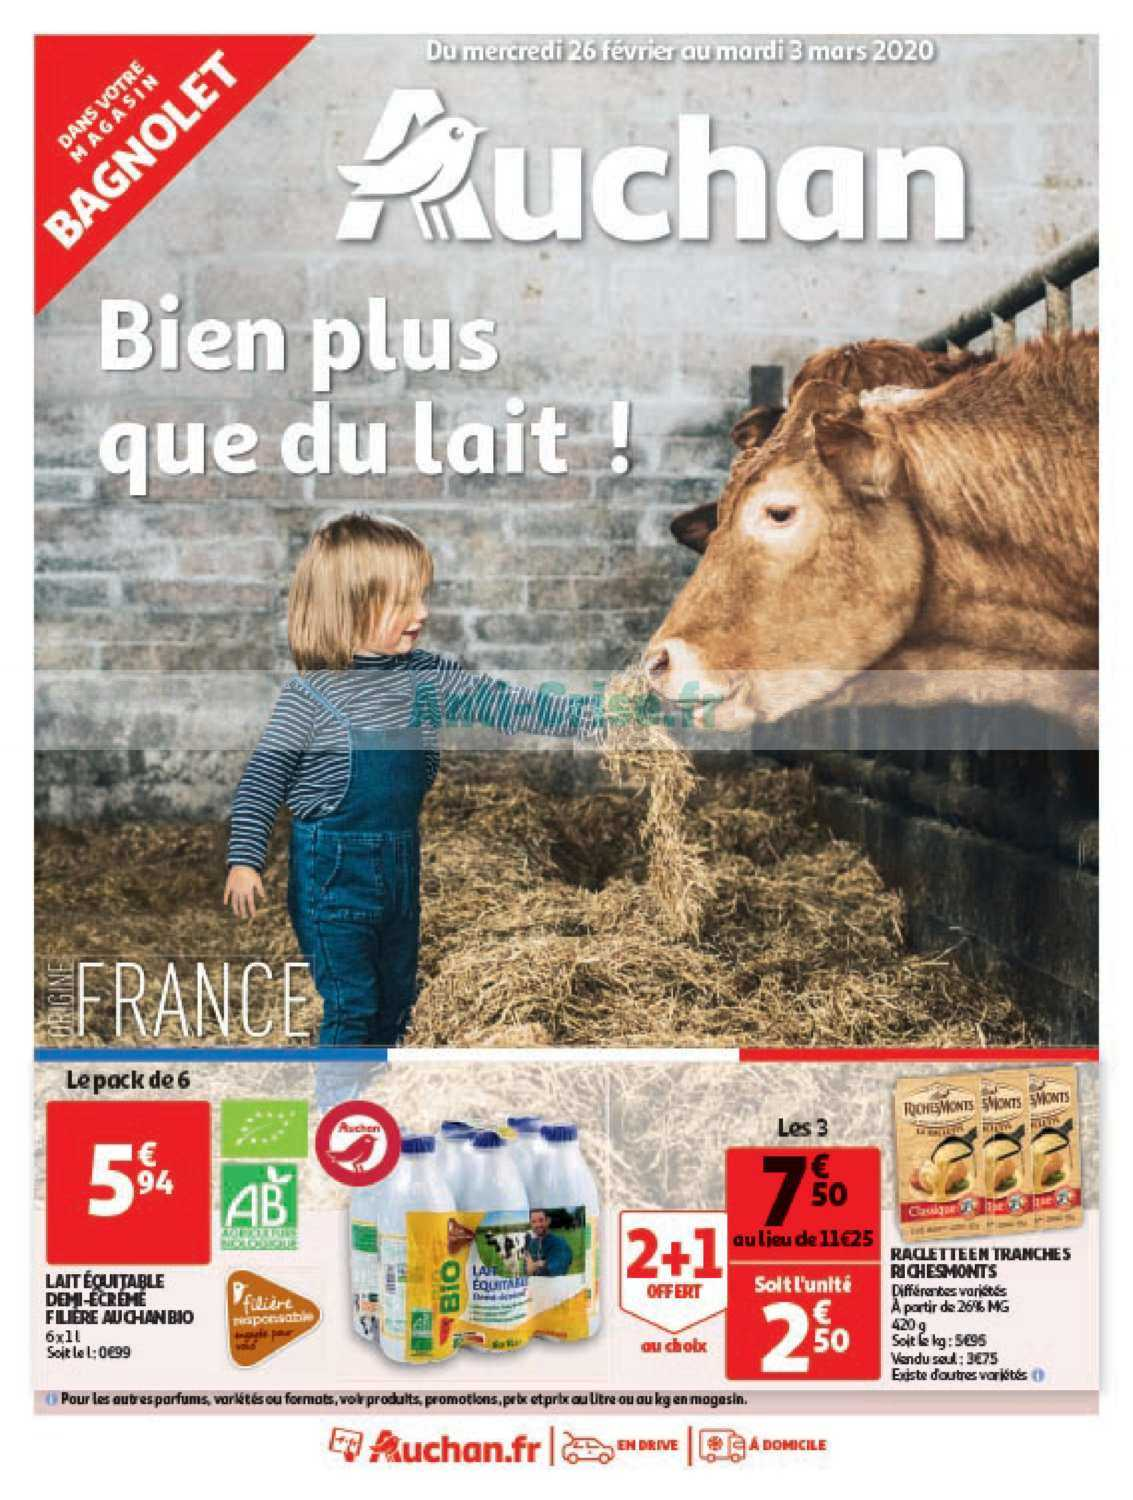 https://media.anti-crise.fr/2020/02/mars2020auchan-local2602202003032020S0C0bagnolet-1-227x300.jpg